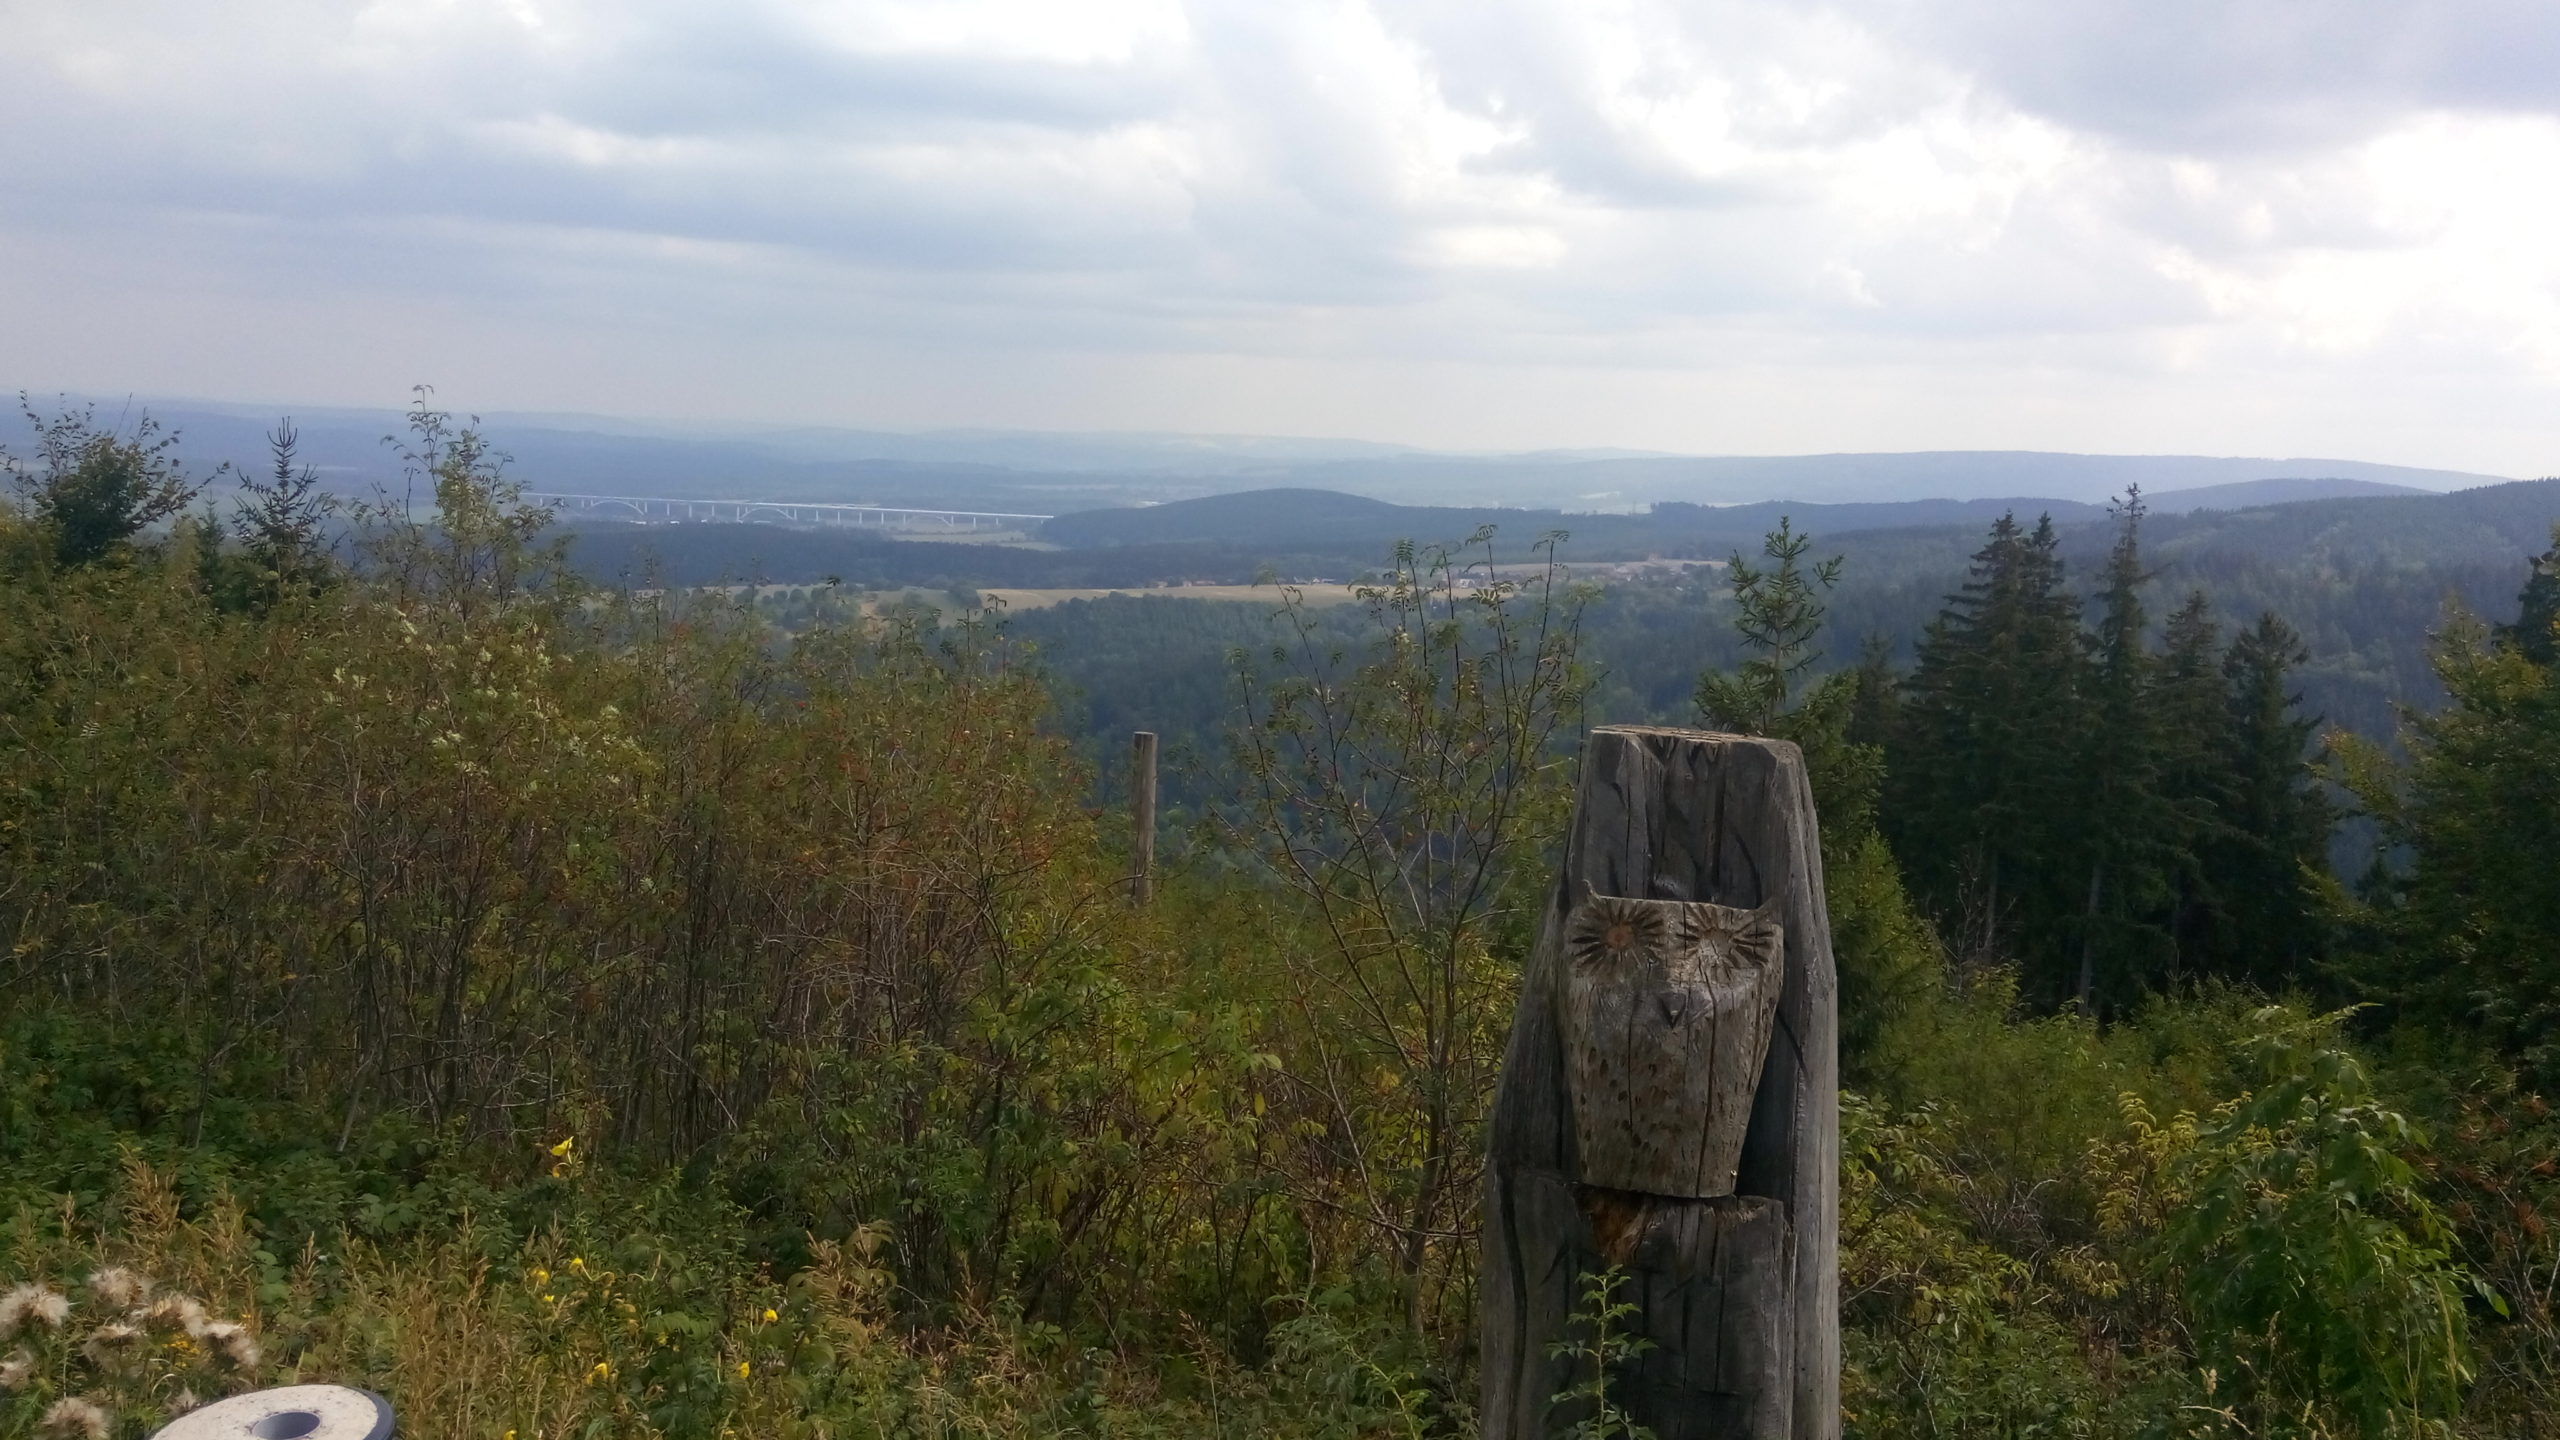 Ilmenau Forest from Above